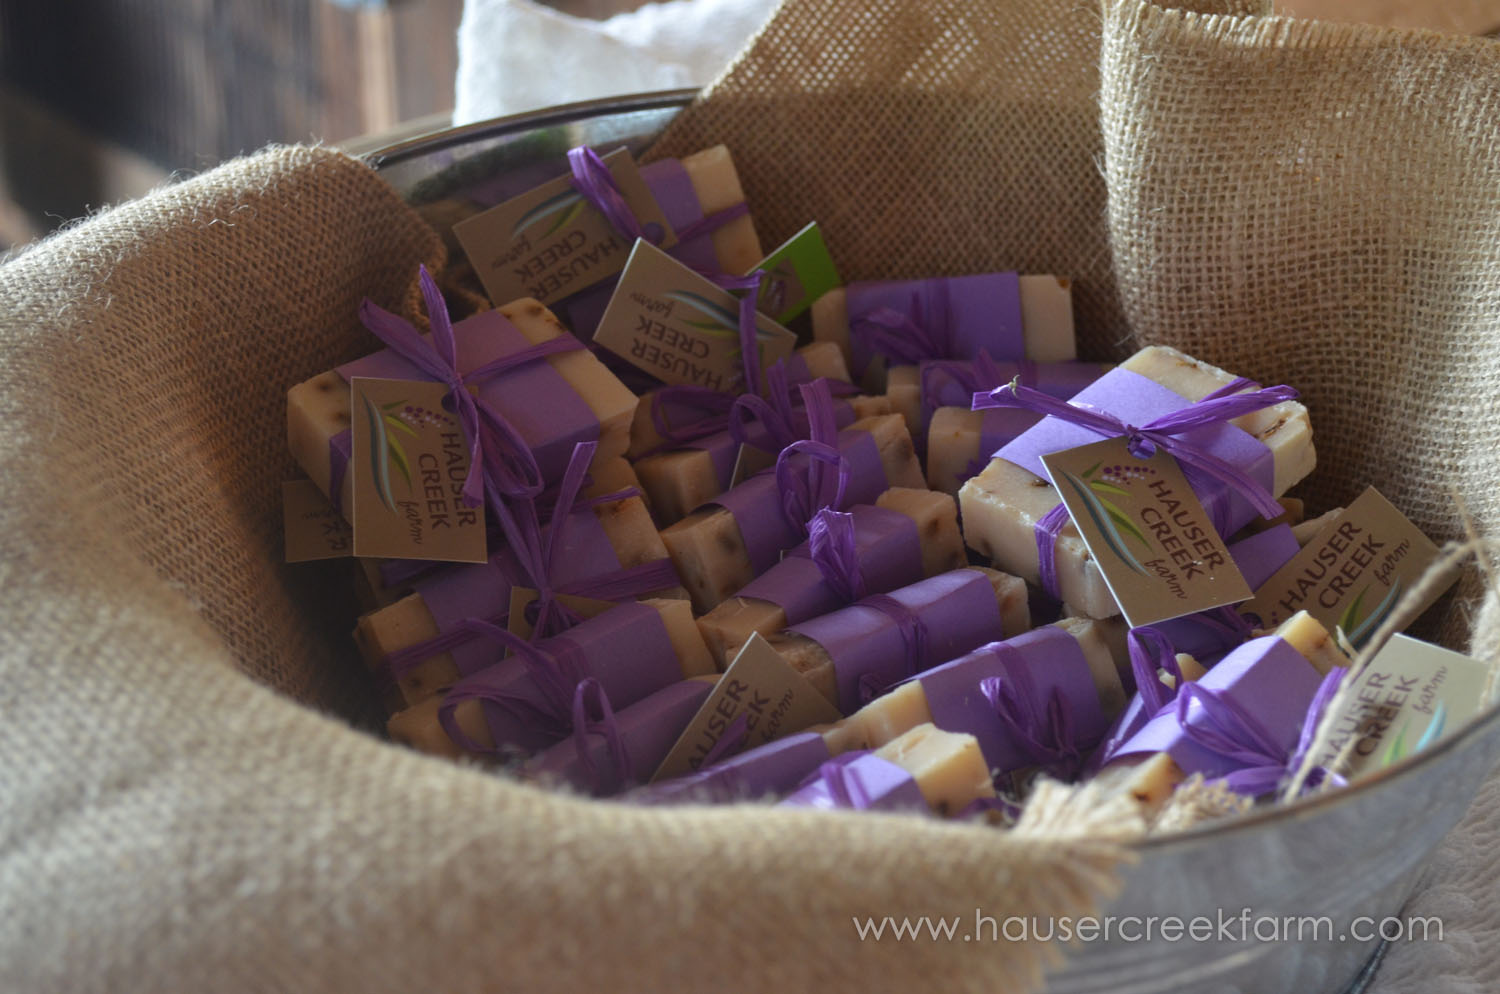 basket-of-lavender-soaps-at-baby-shower-for-faye-at-hauser-creek-farm-042.jpg